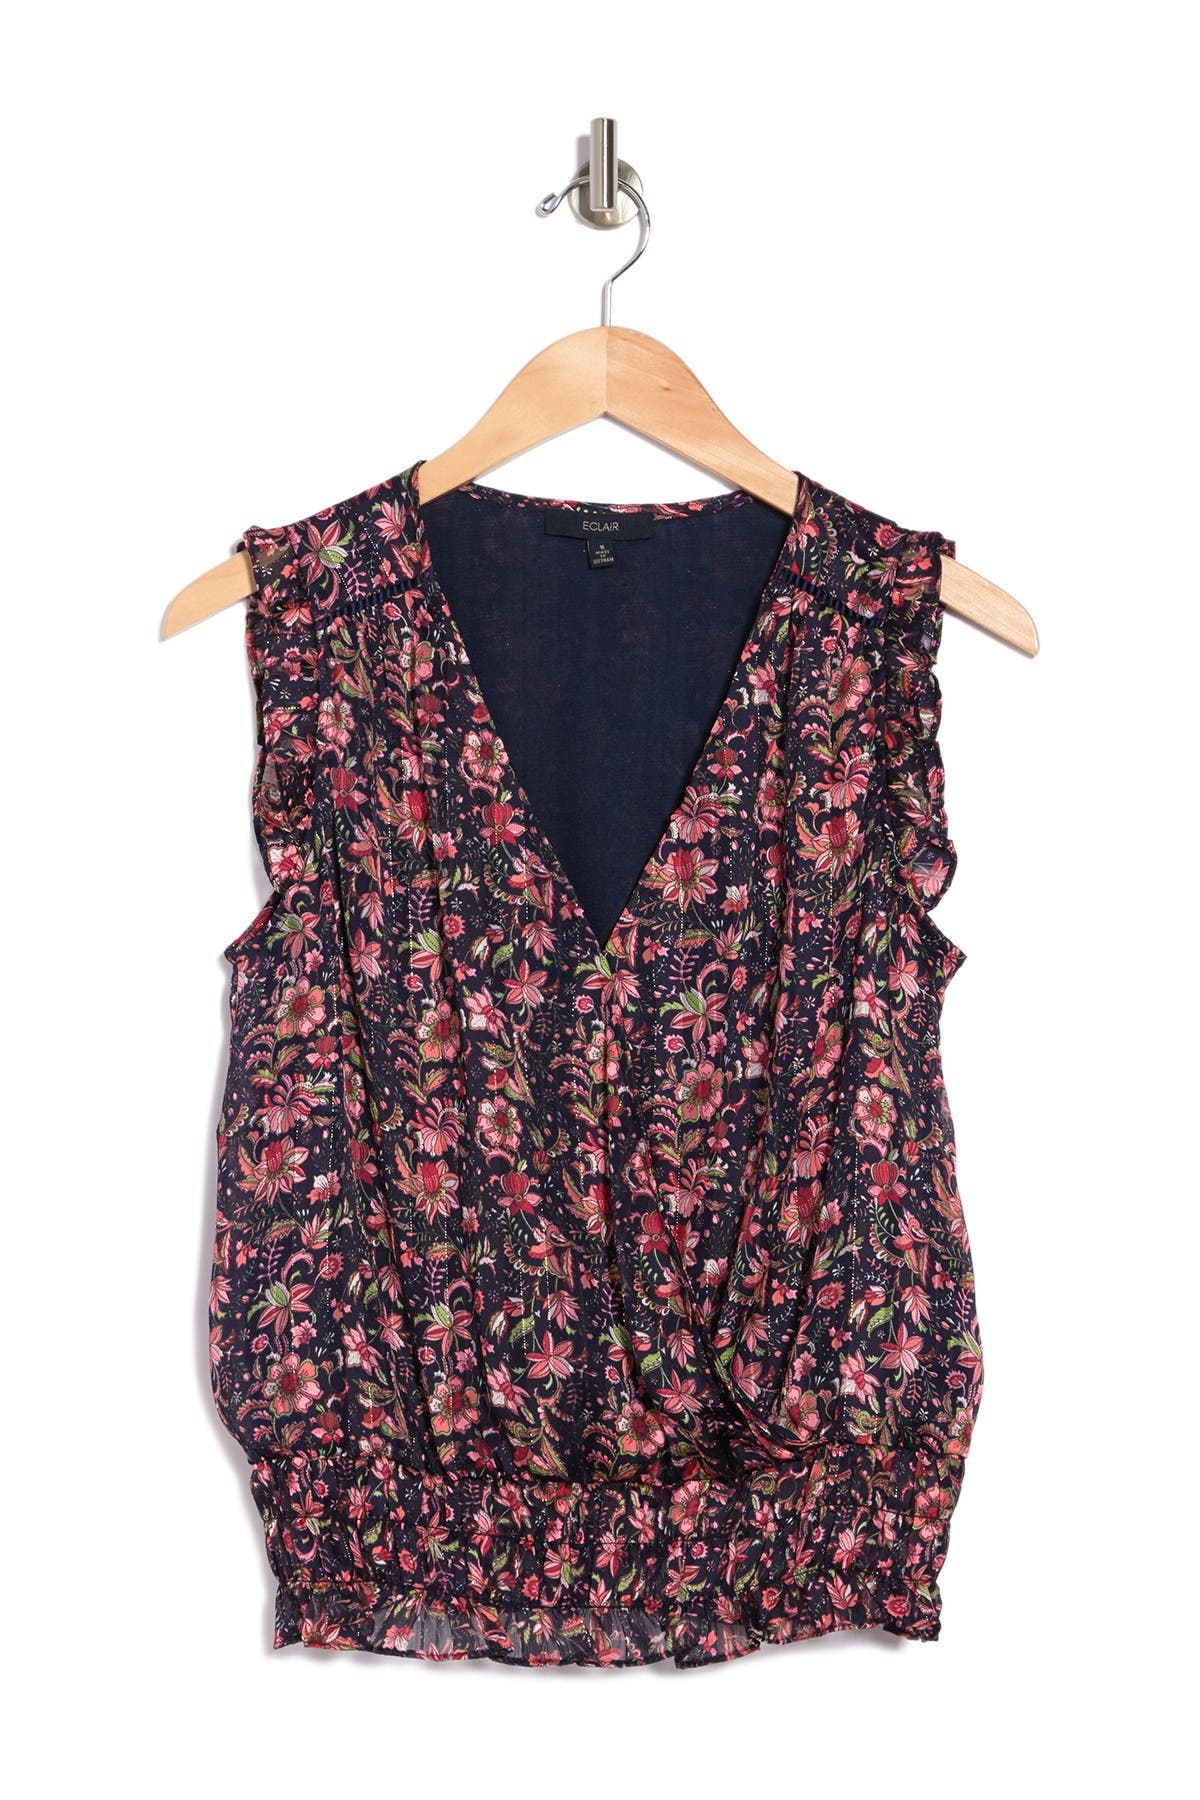 Image of ECLAIR Floral Surplice Sleeveless Top